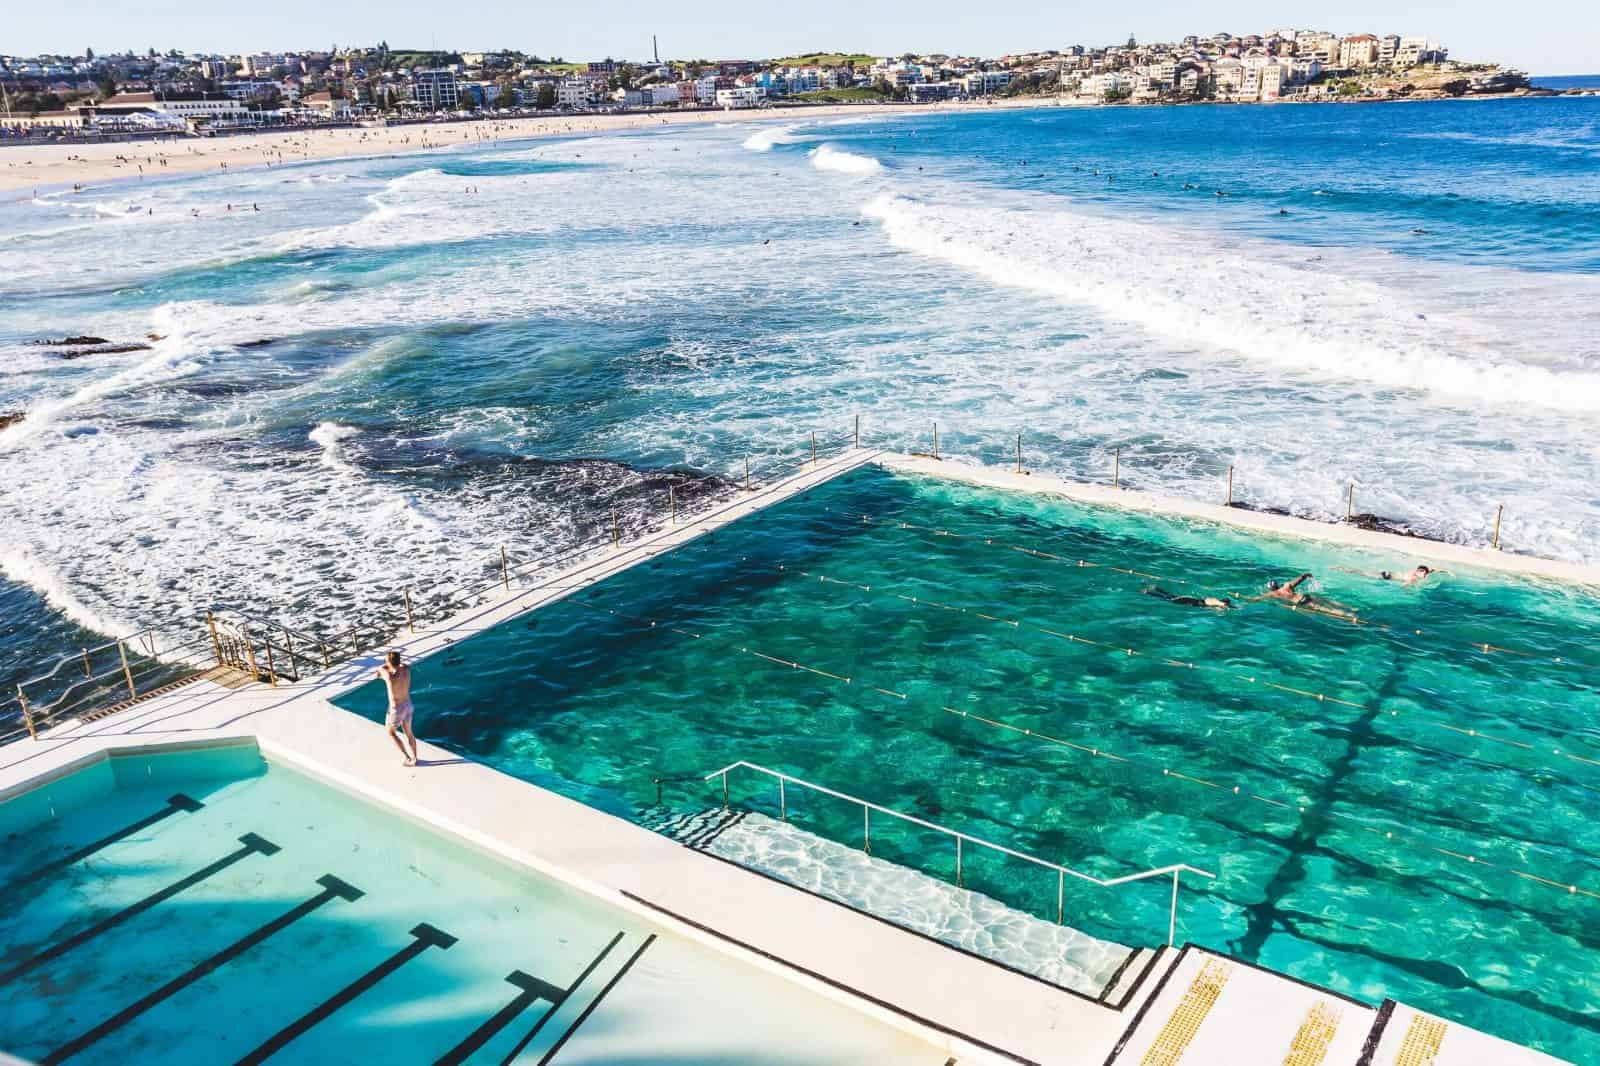 Picture of a pool by a beach in Sydney, Australia